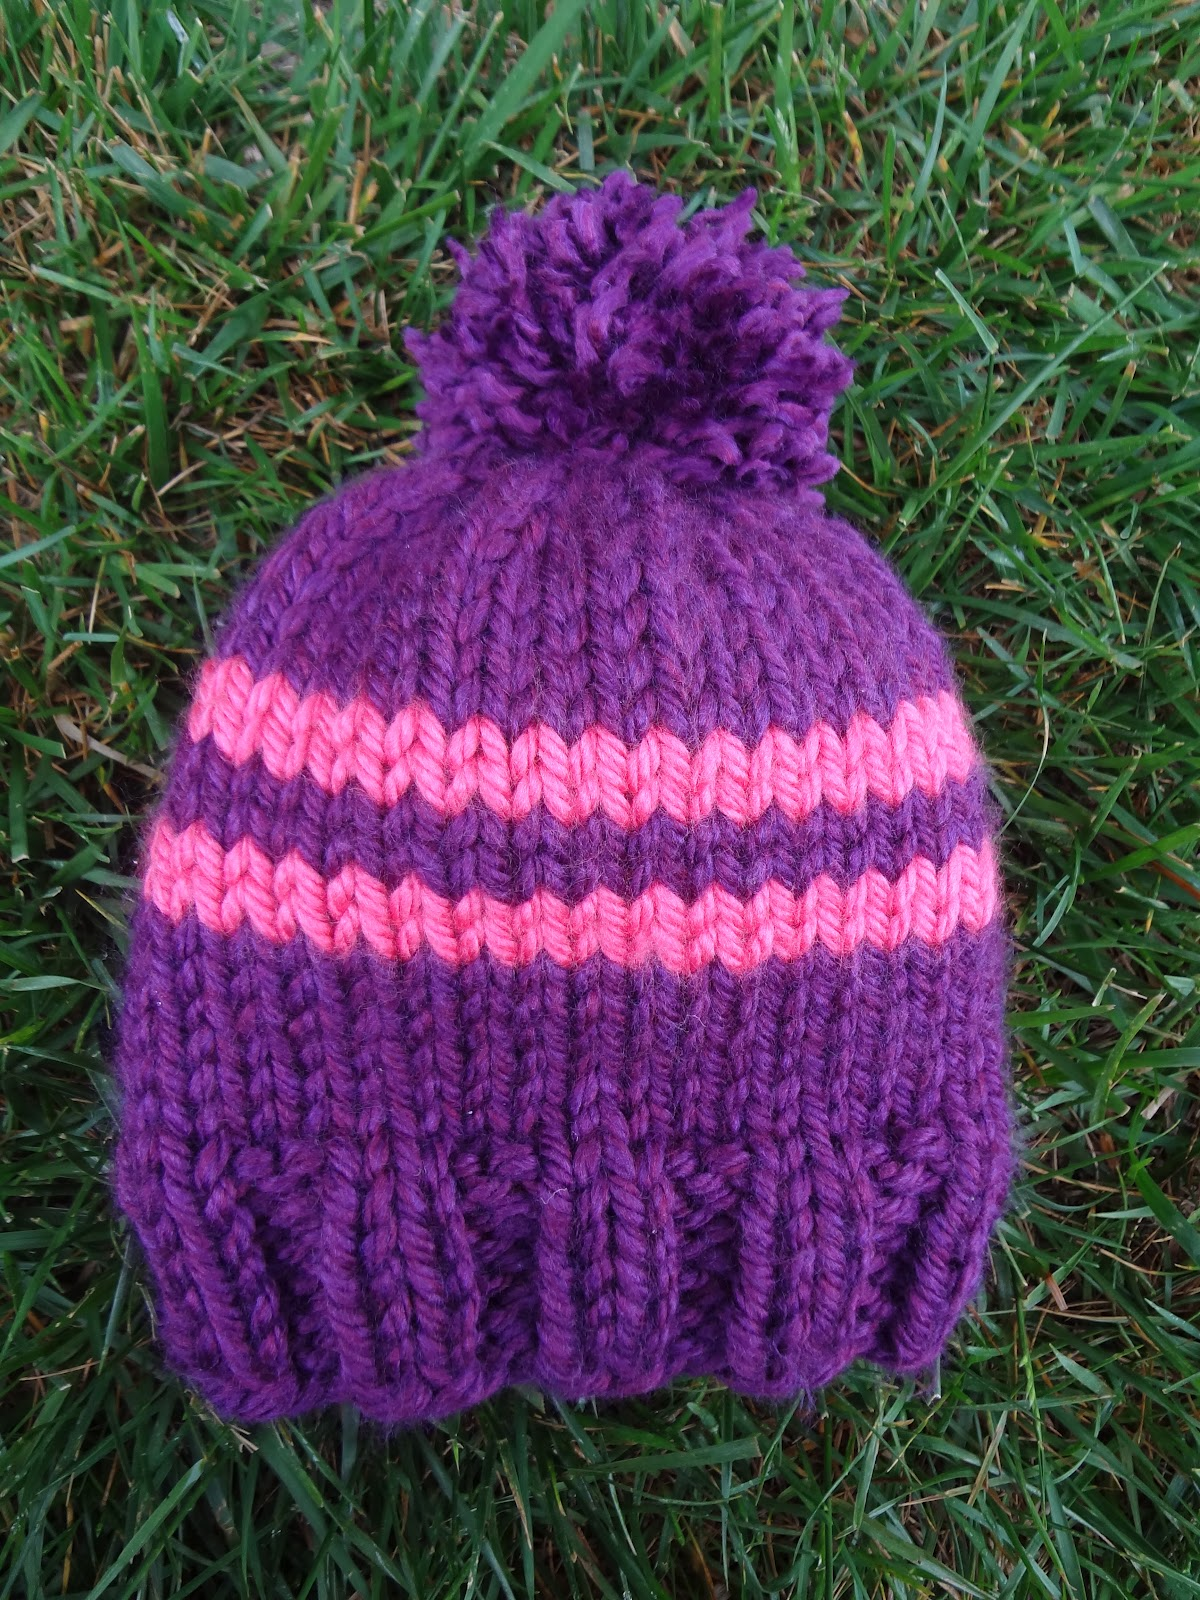 Free Knitted Beanie Patterns For Kids : Fiber Flux: Free Knitting Pattern! Preschooler Rugby Hat